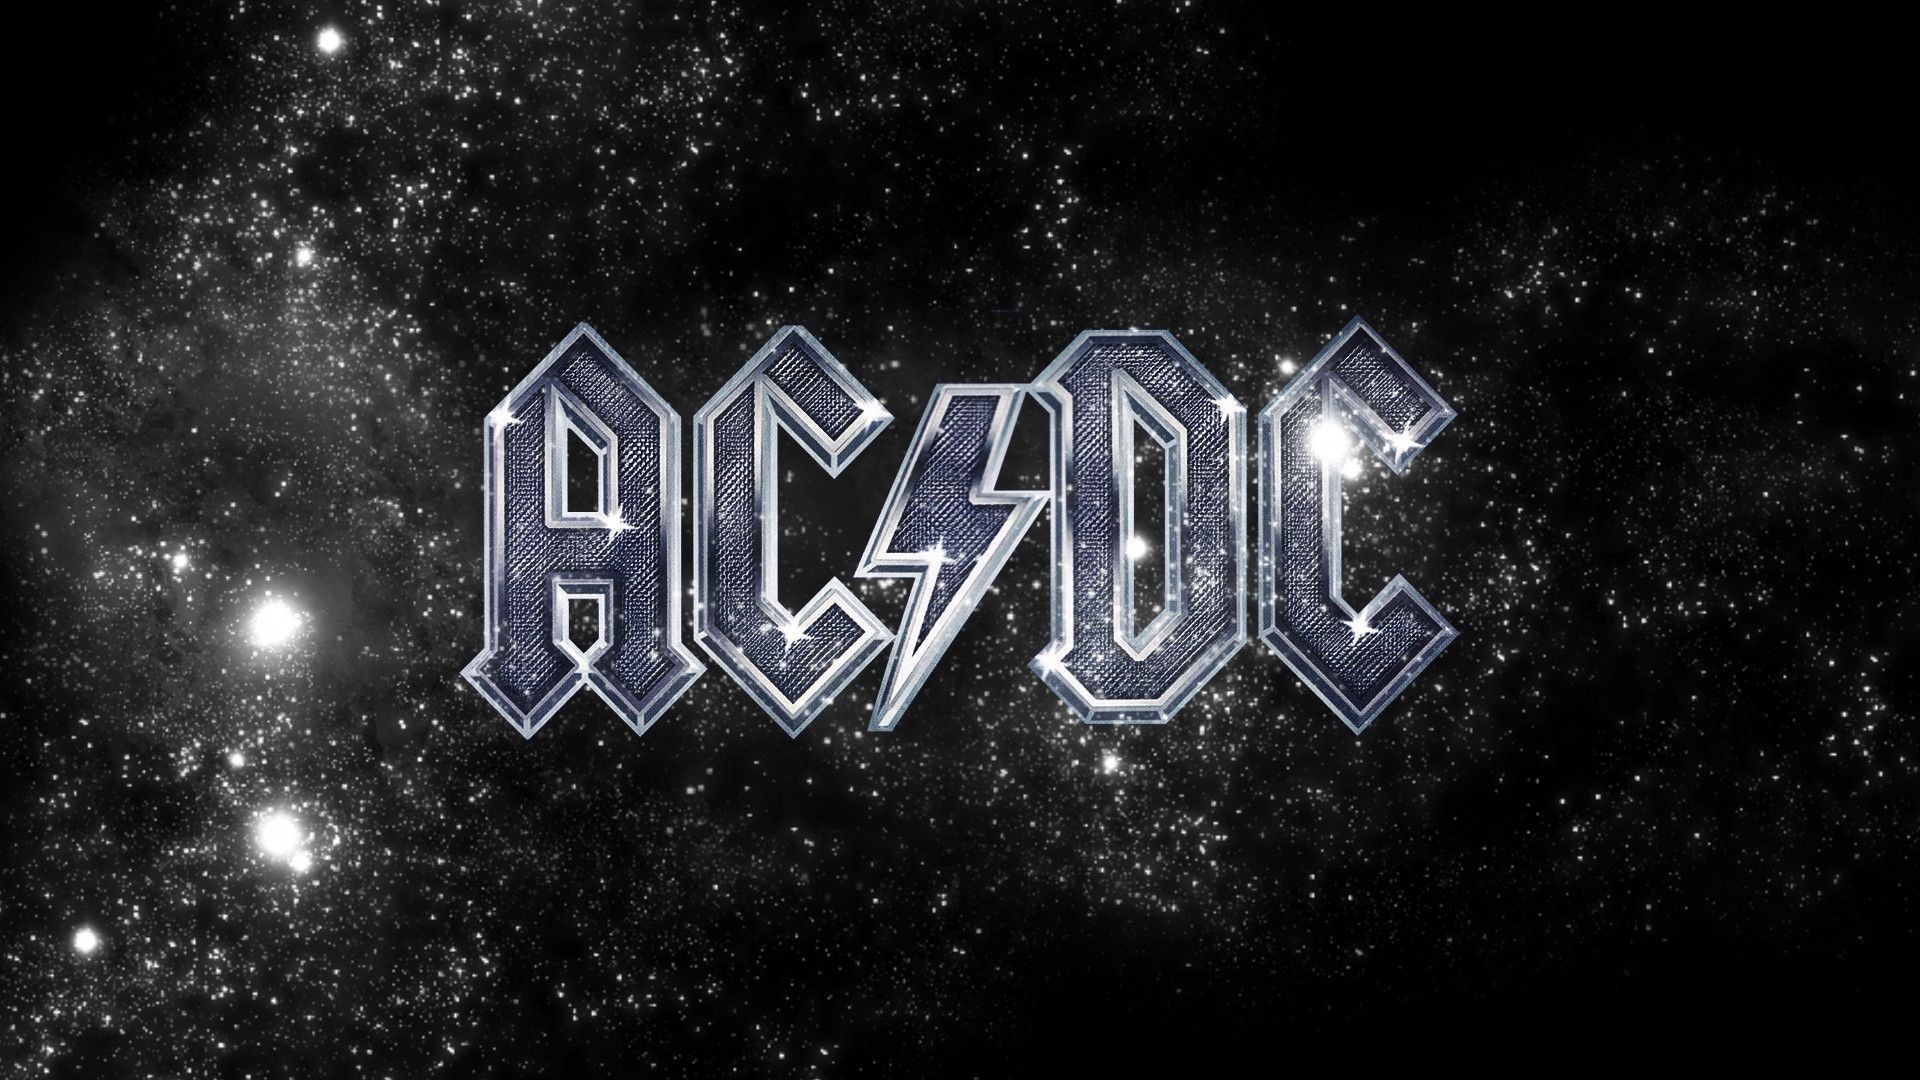 1920x1080 HDQ Cover Wallpapers AC DC Free Photos For